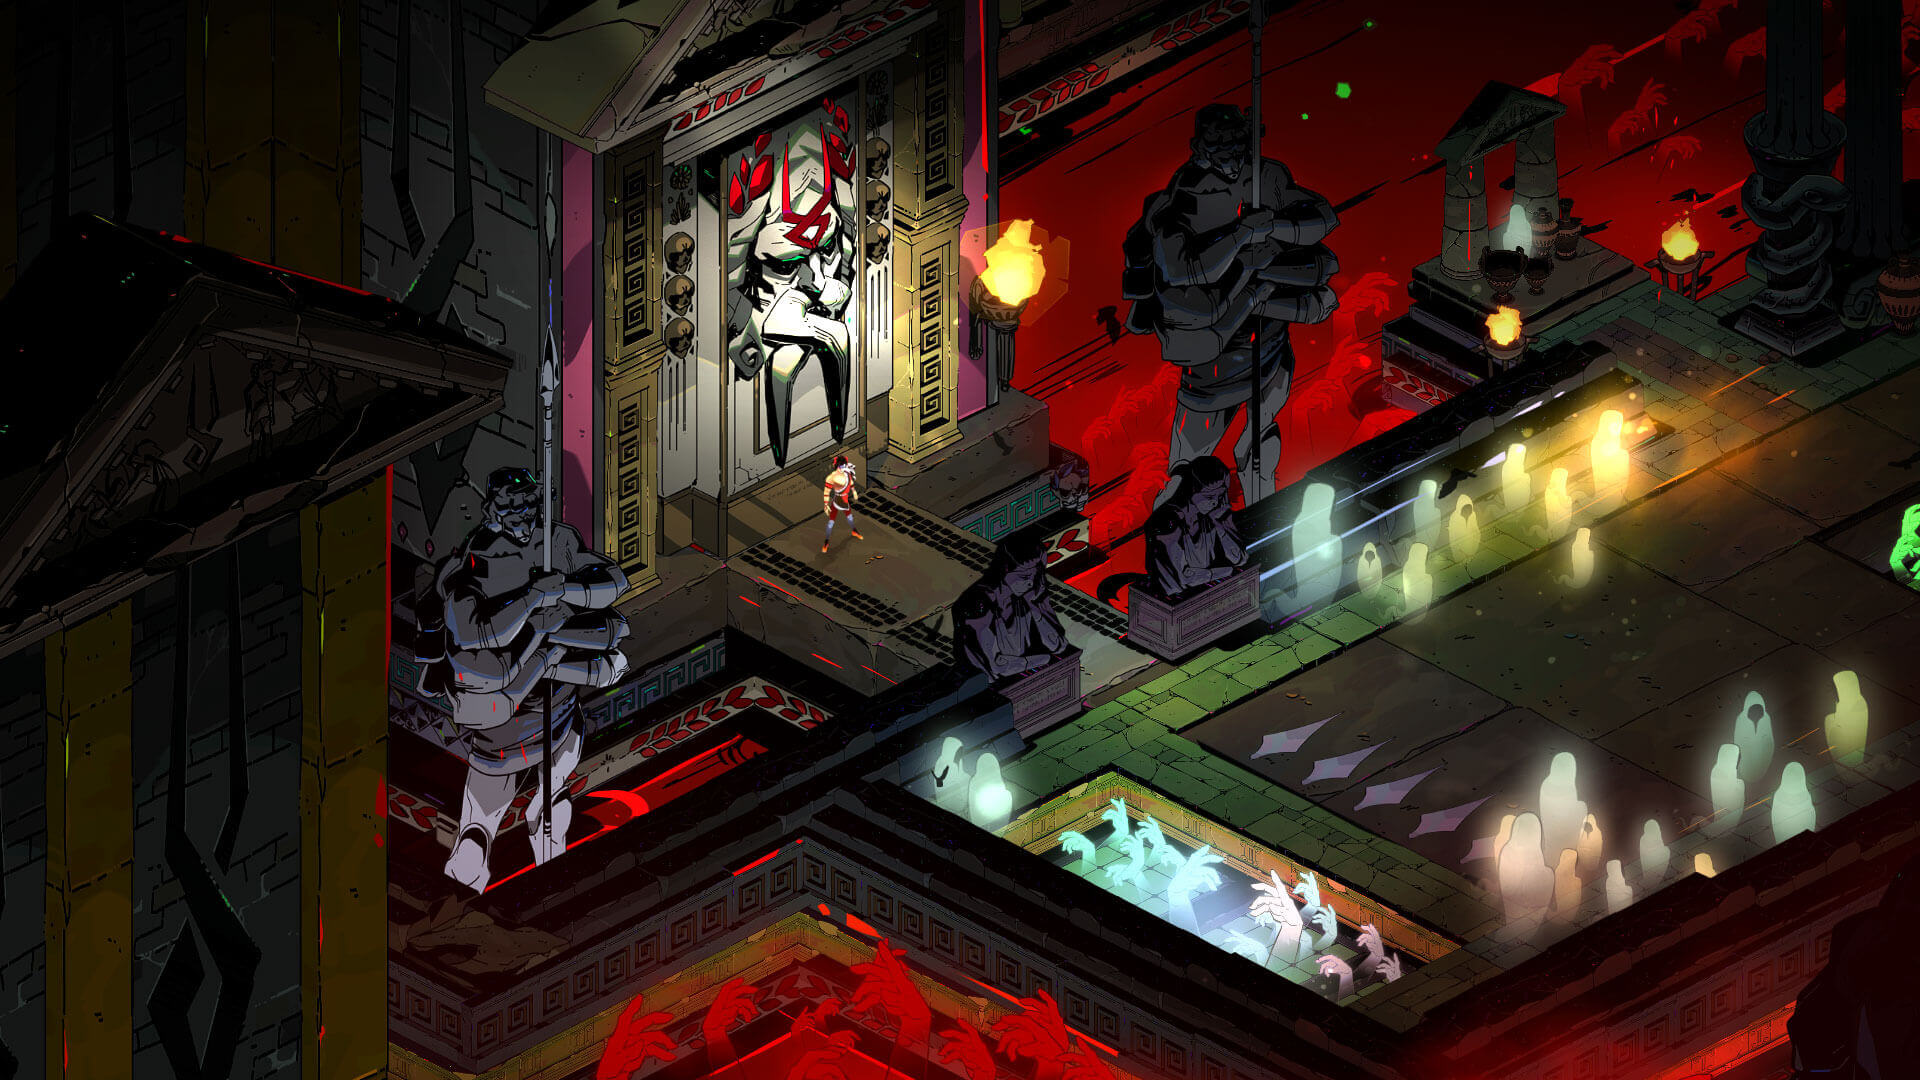 Supergiant Games announced Hades at The Game Awards